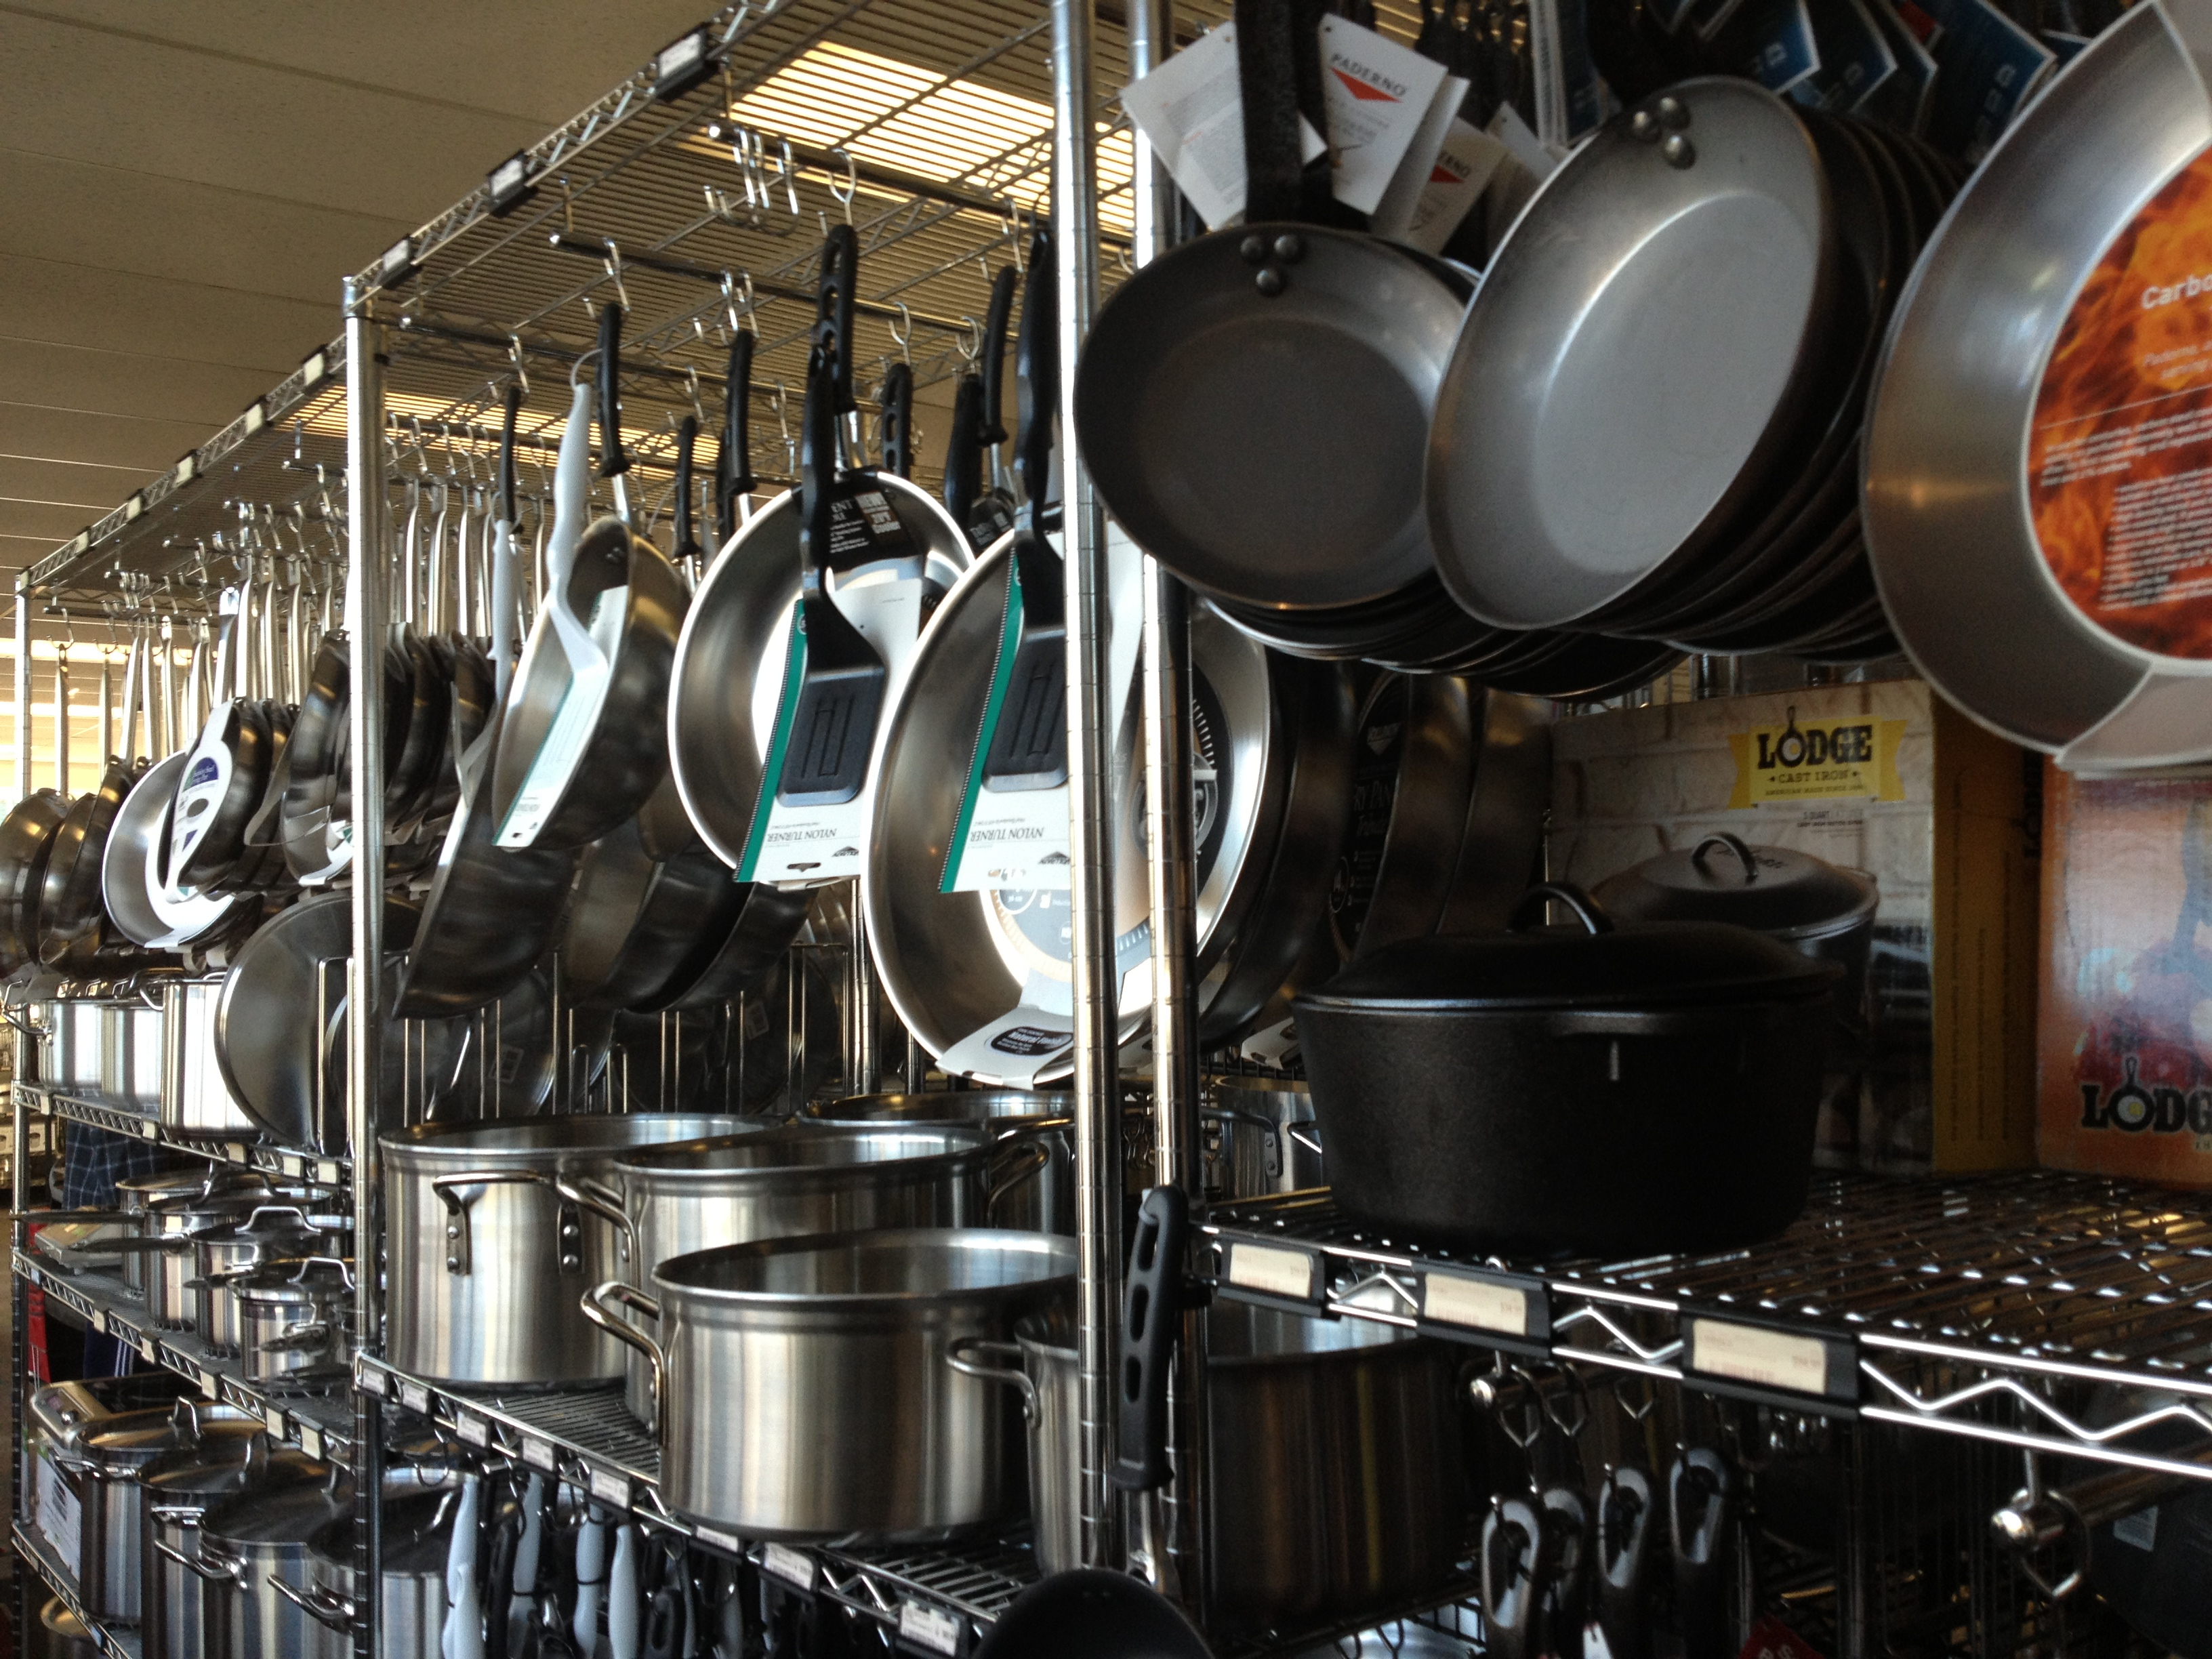 used commercial kitchen equipment buyers stone backsplash field trip seattle restaurant supply stores oh briggsy